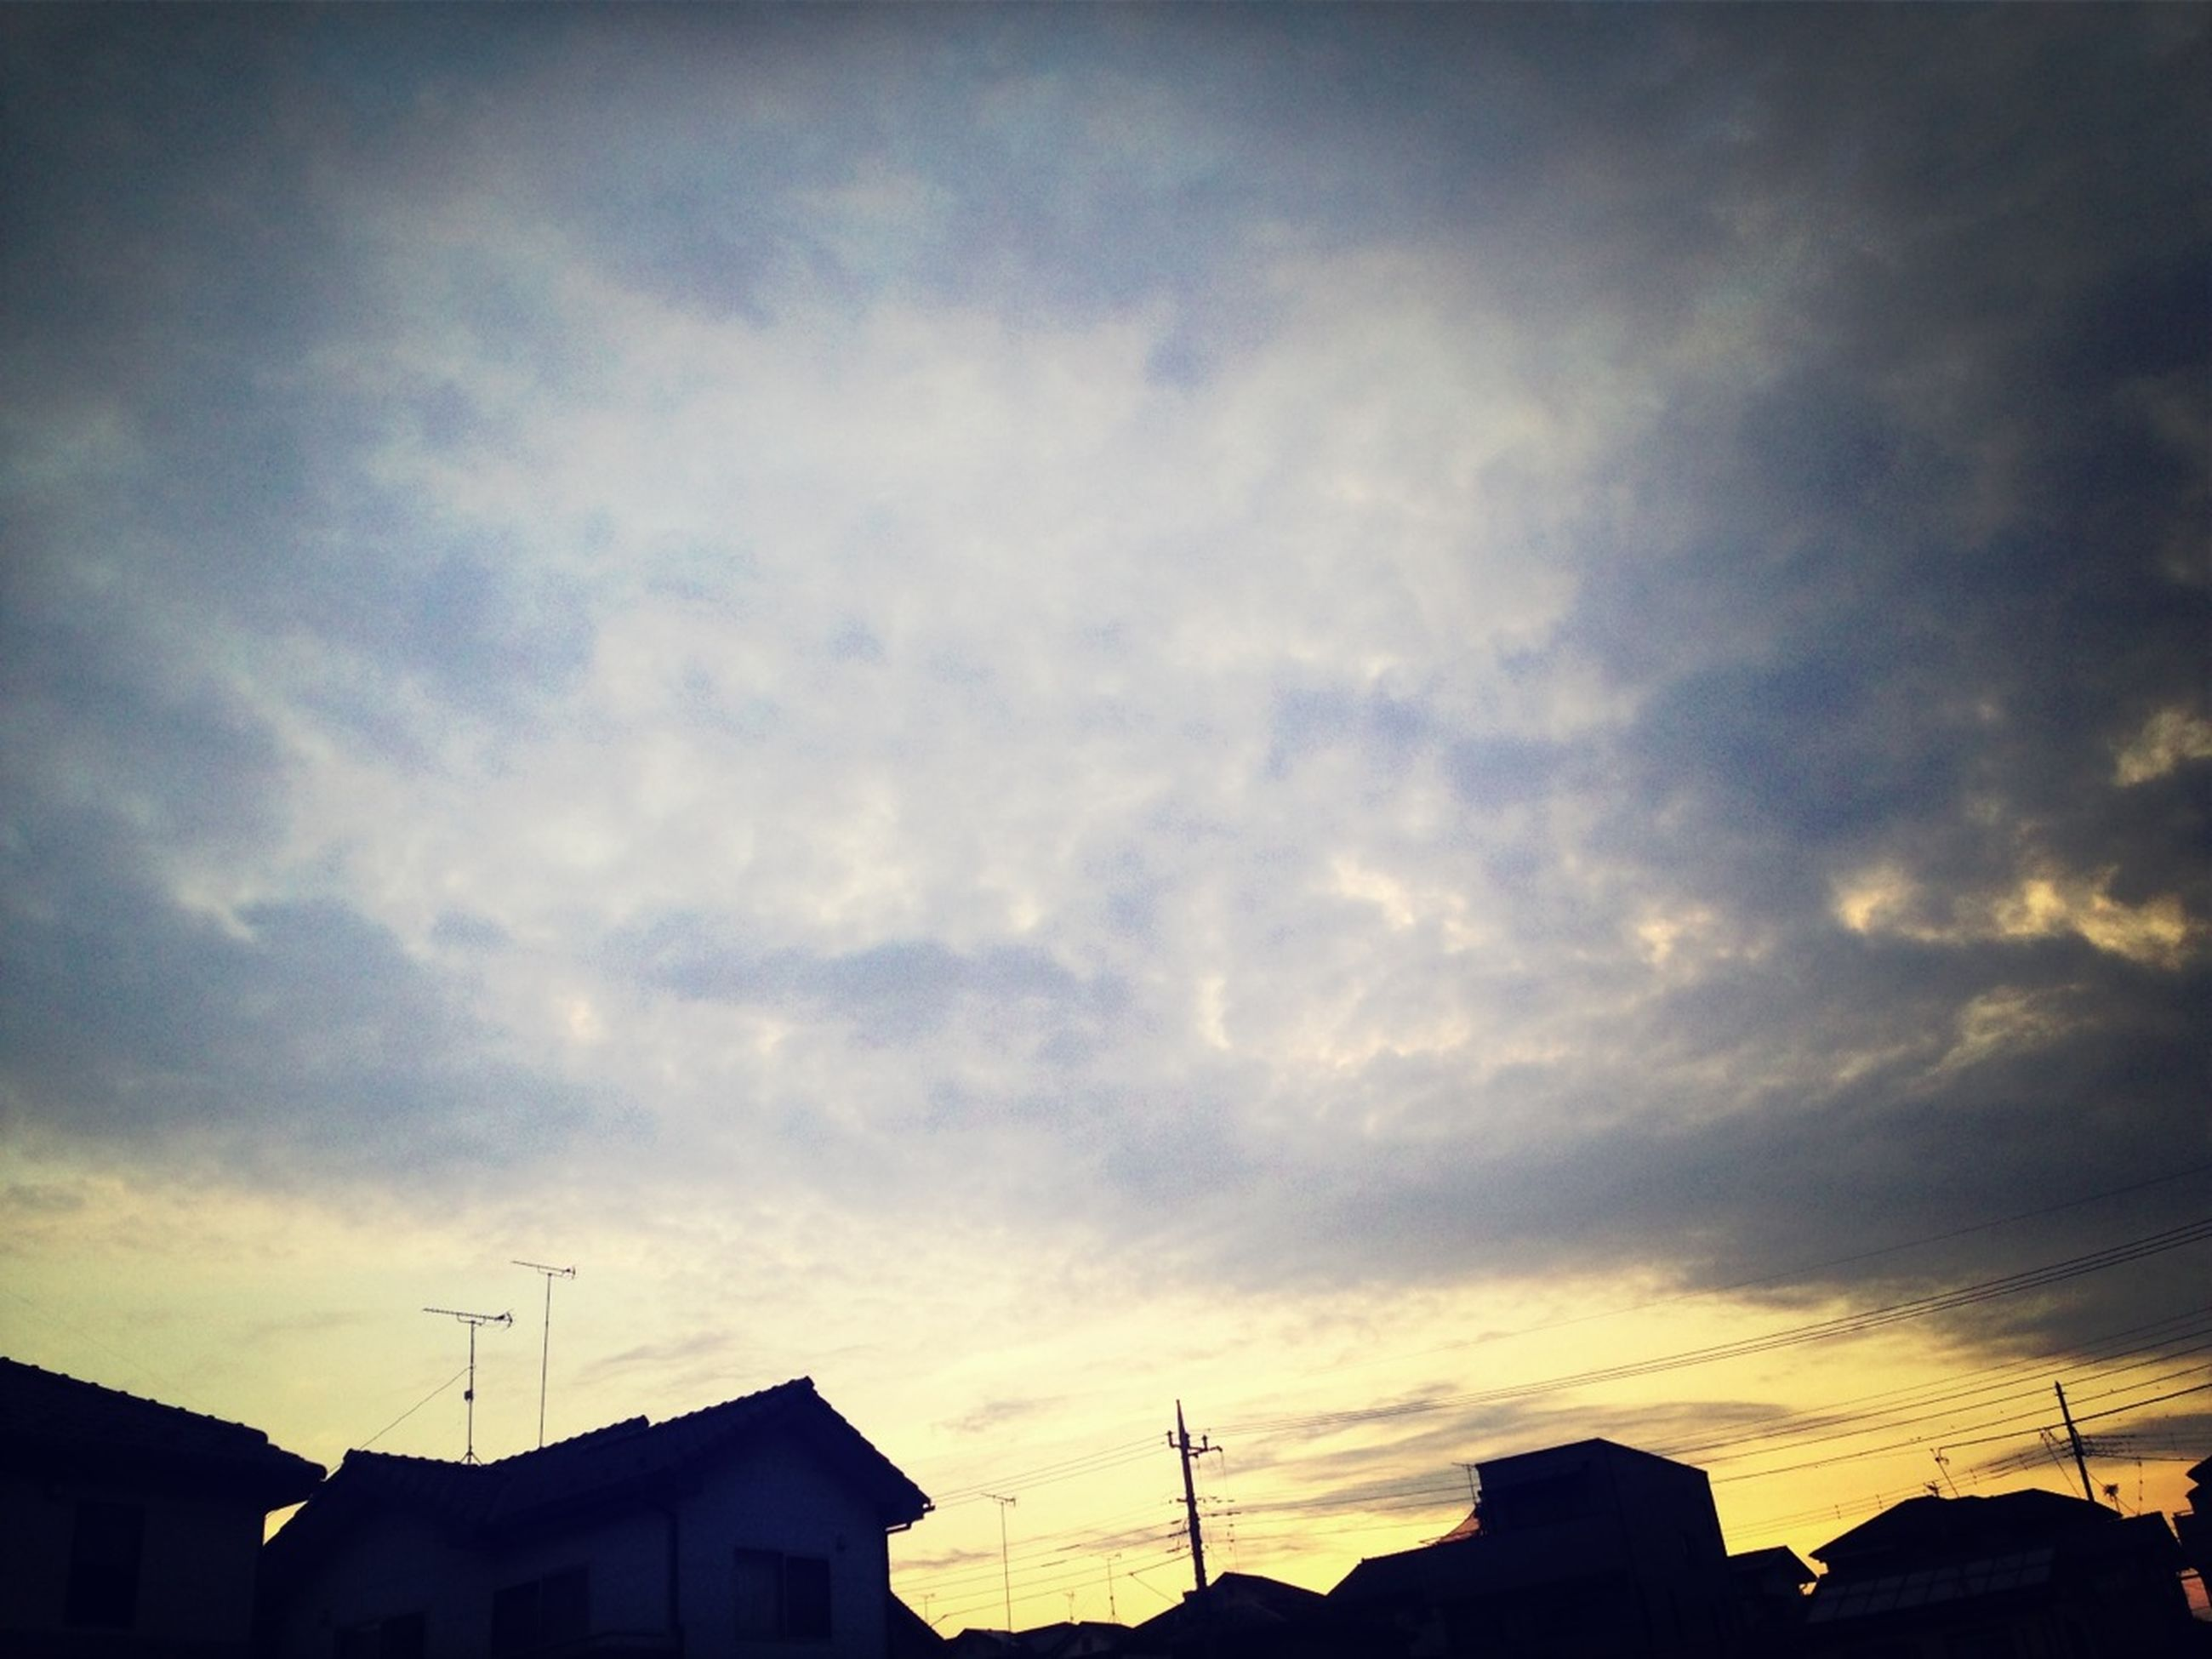 building exterior, architecture, built structure, low angle view, sky, house, sunset, residential structure, cloud - sky, silhouette, high section, residential building, power line, building, cloud, cloudy, roof, outdoors, no people, cable